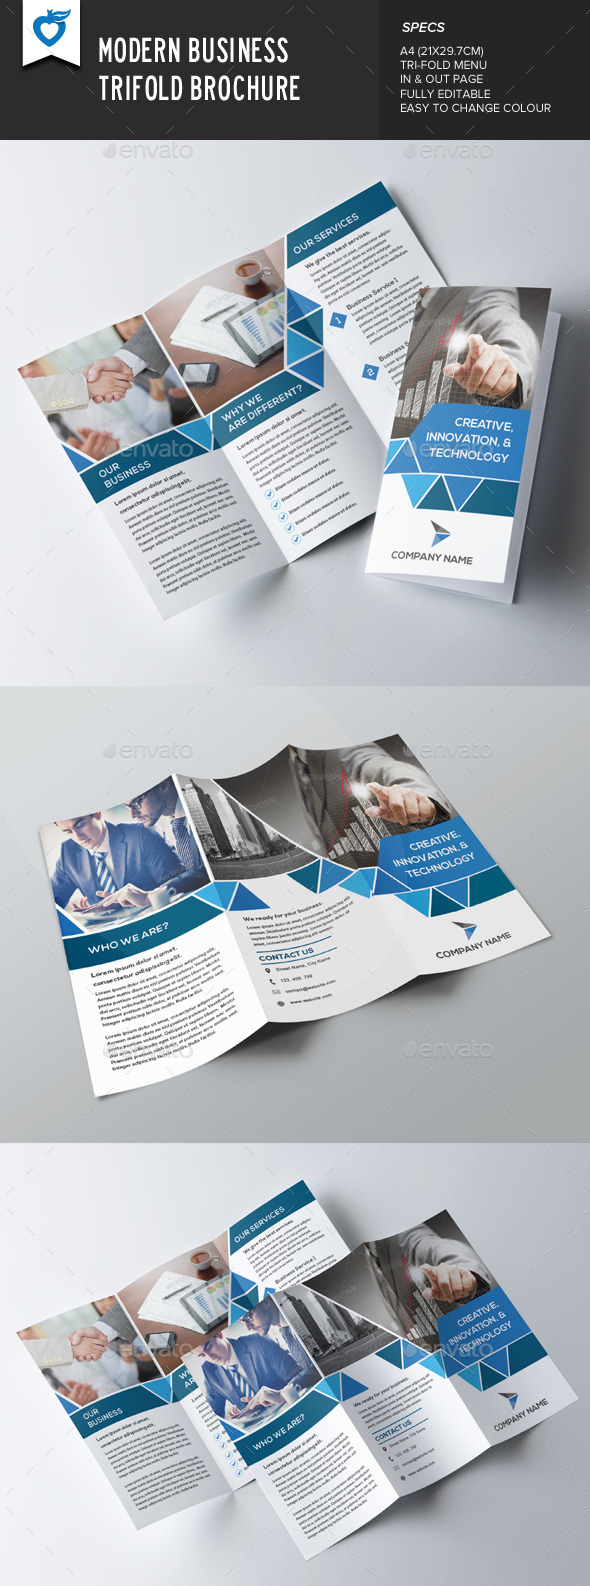 Modern Business Trifold